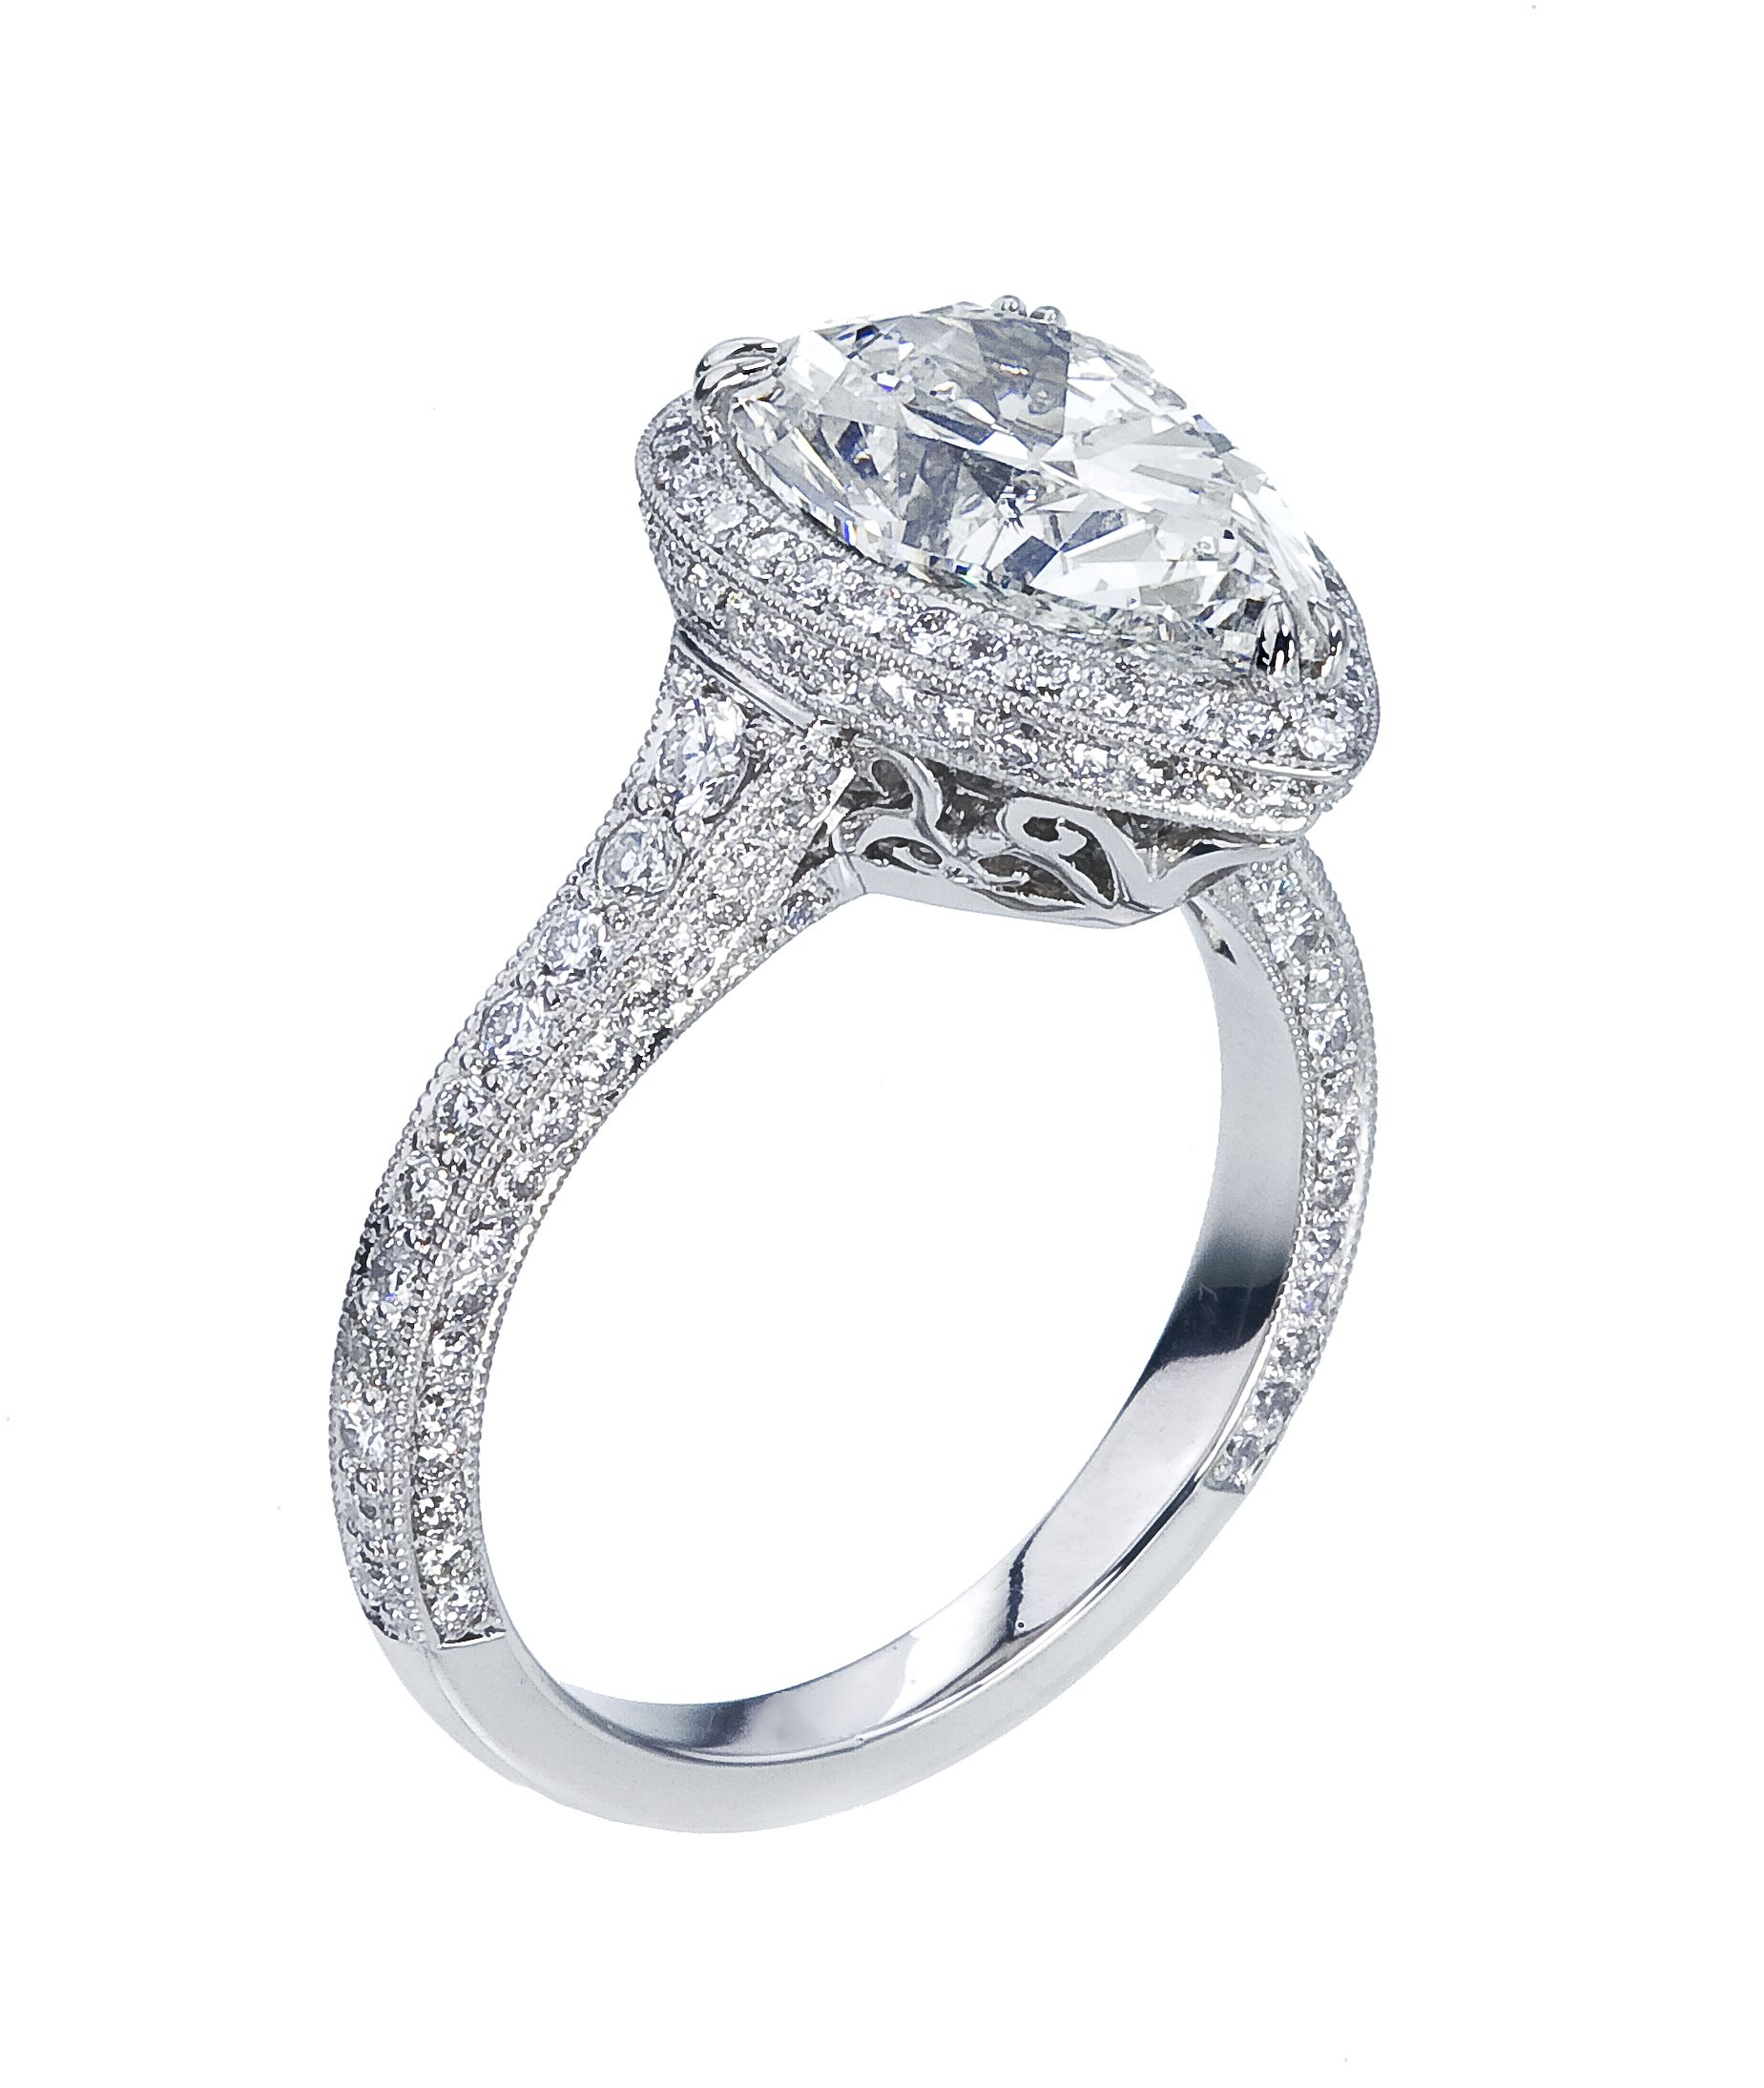 ring rings pear london wedding product company claw diamond shaped